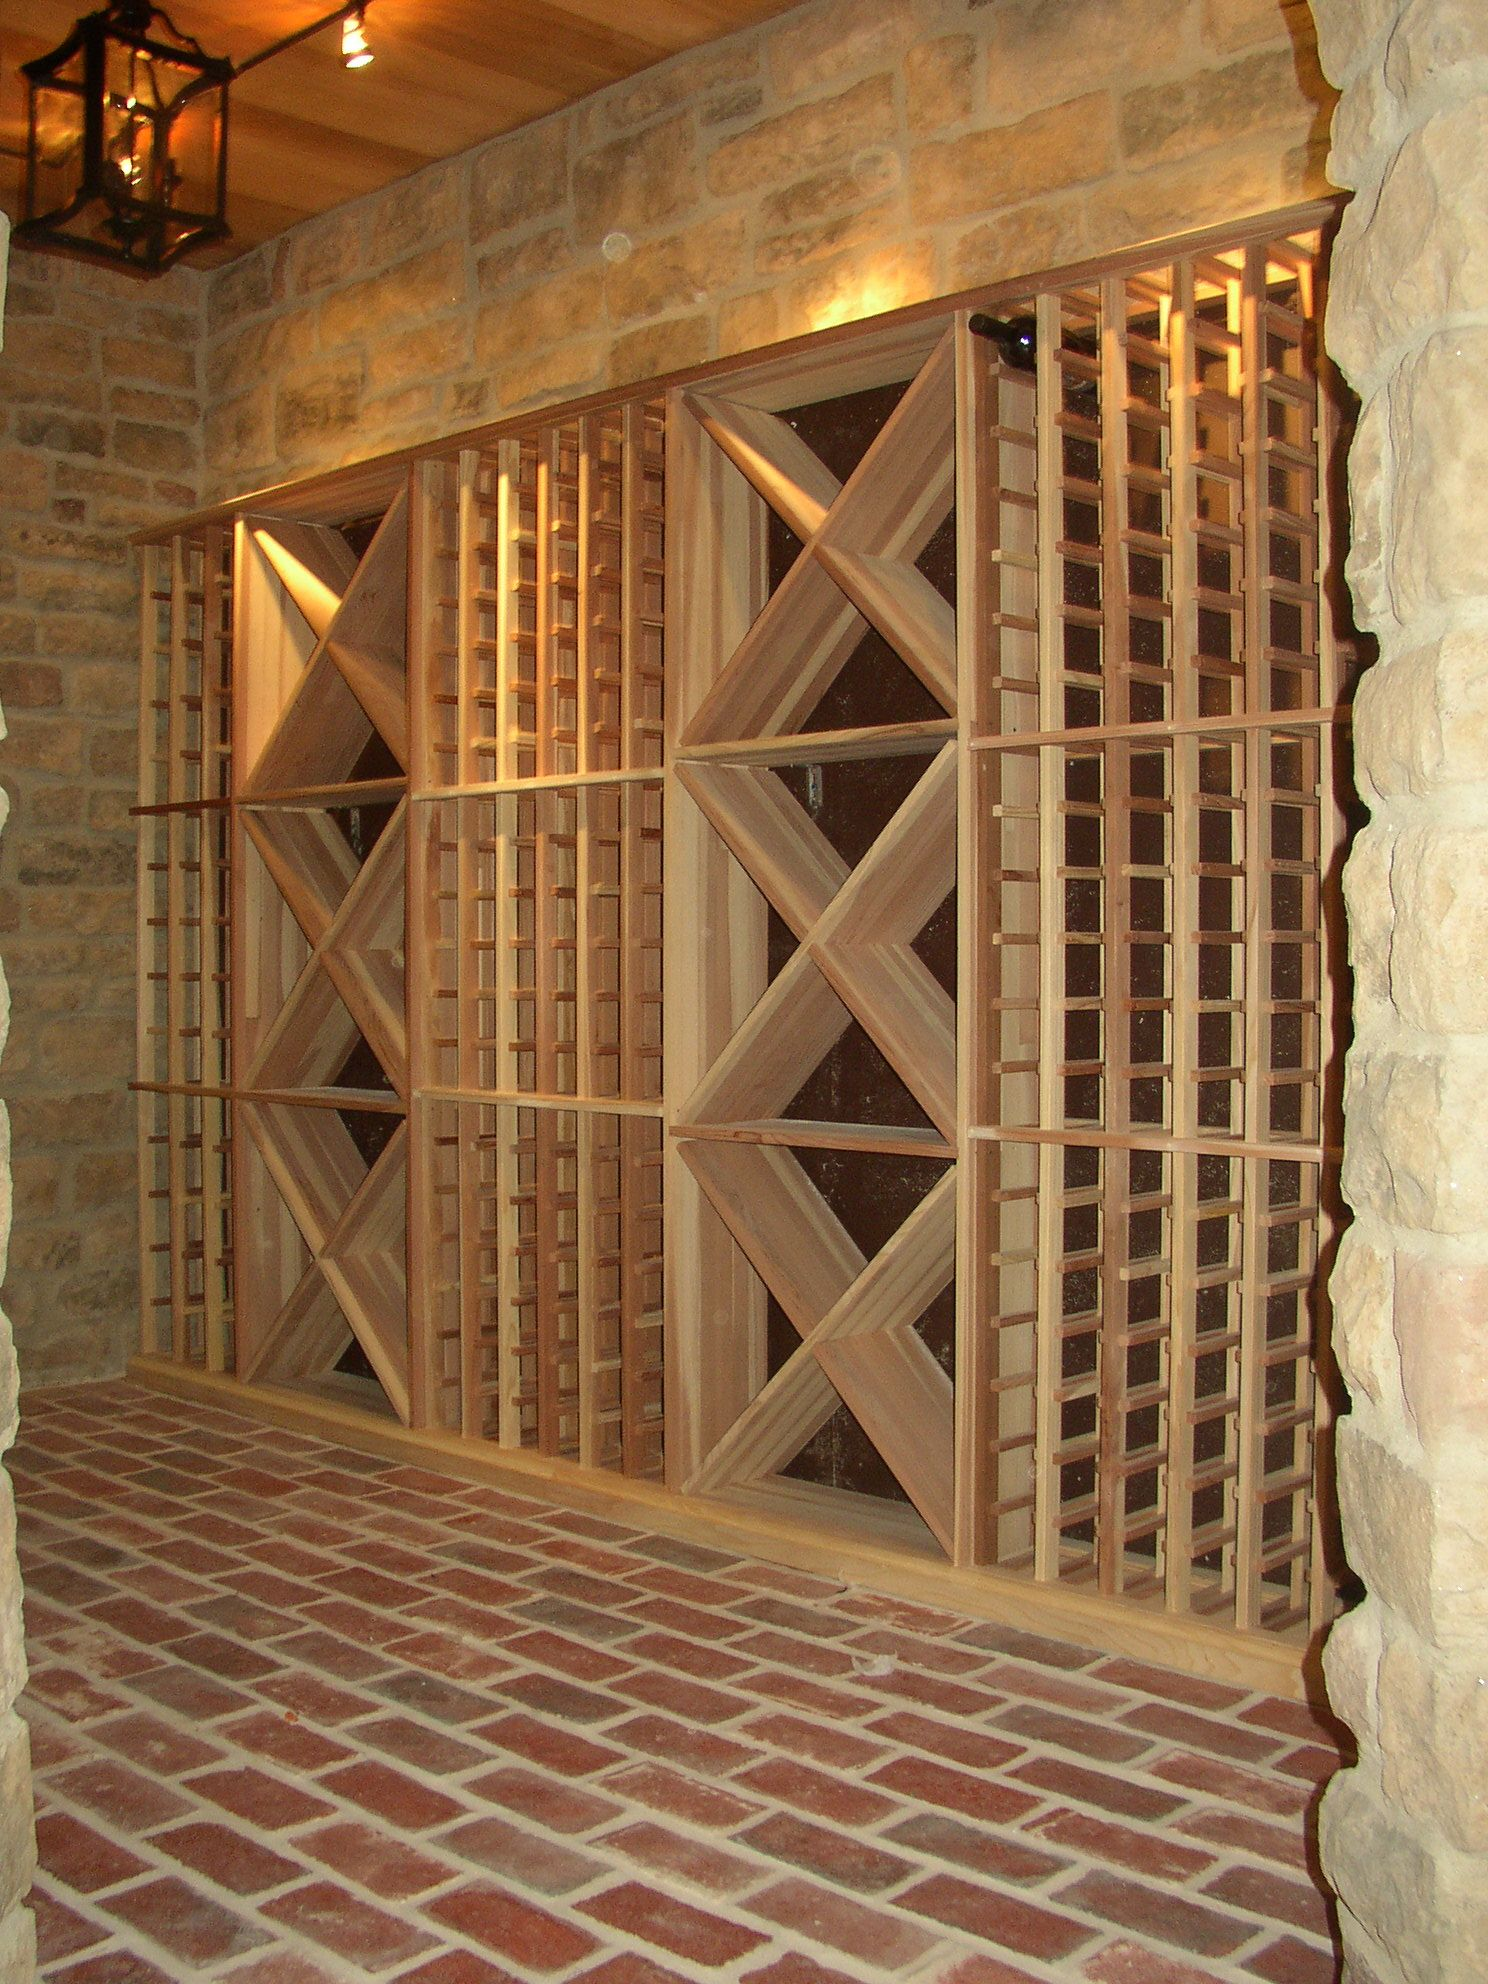 wine cellar furniture 1000 images about wine cellar on pinterest wine cellar wine cellar design and bernhardt vintage desk 458592